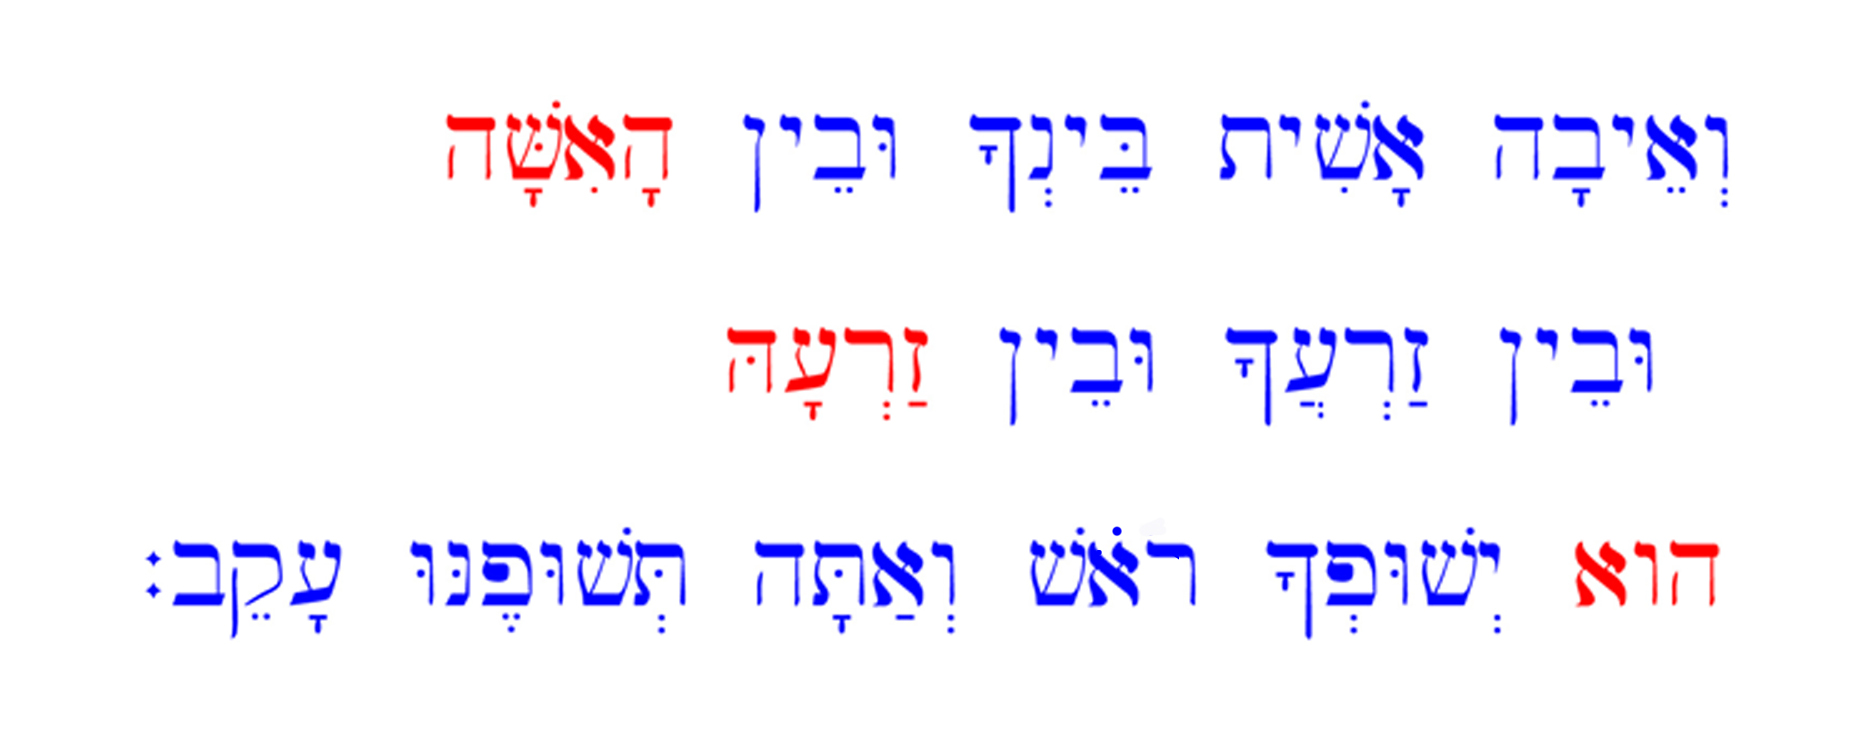 Genesis 3:15 in Biblical Hebrew Masoretic Pointed Text.